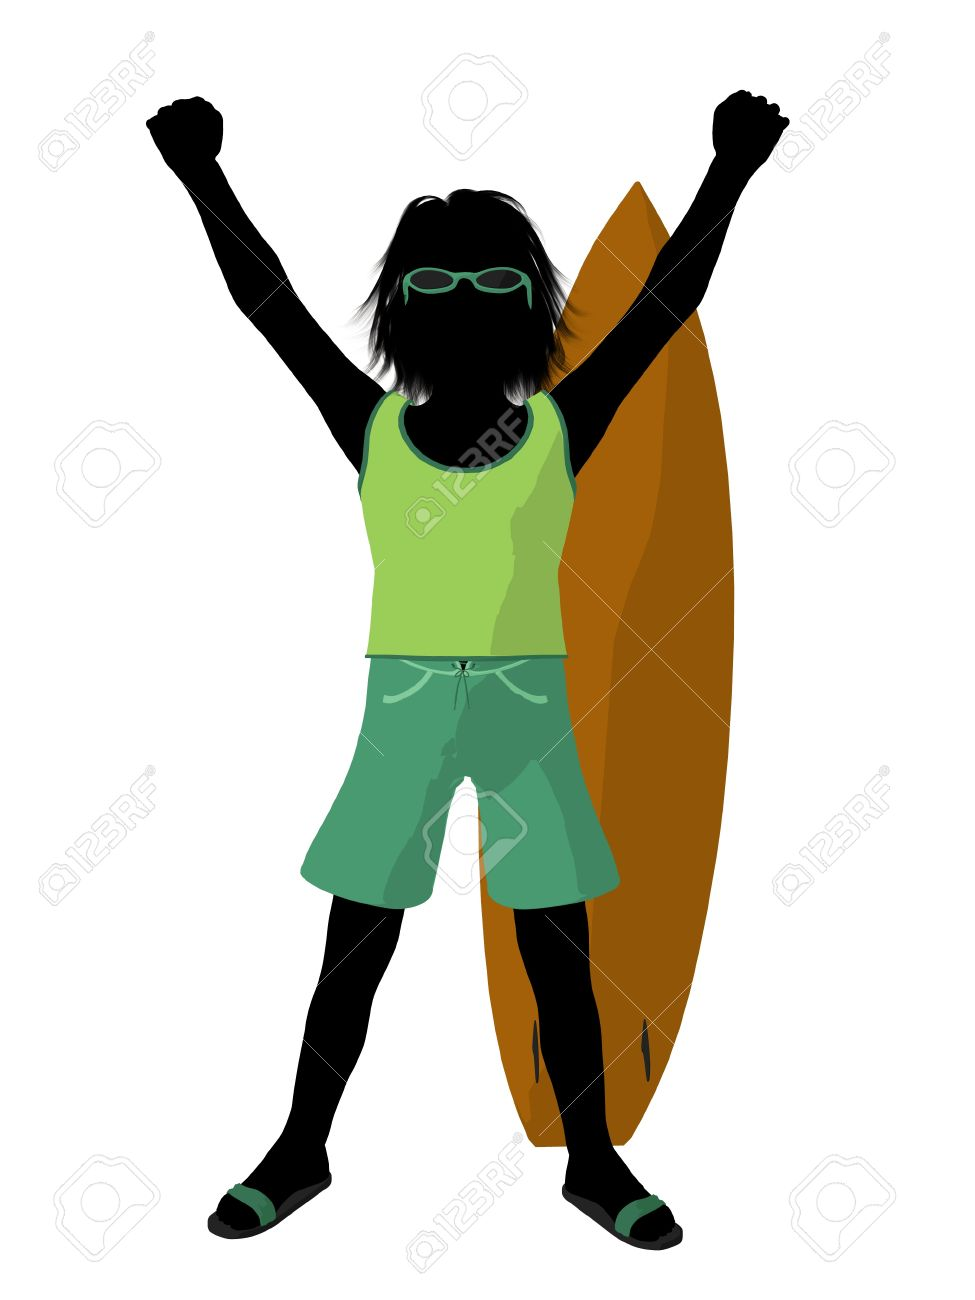 Silhouette boy surfboard clipart transparent stock Beach Boy With Surfboard Illustration Silhouette On A White ... transparent stock